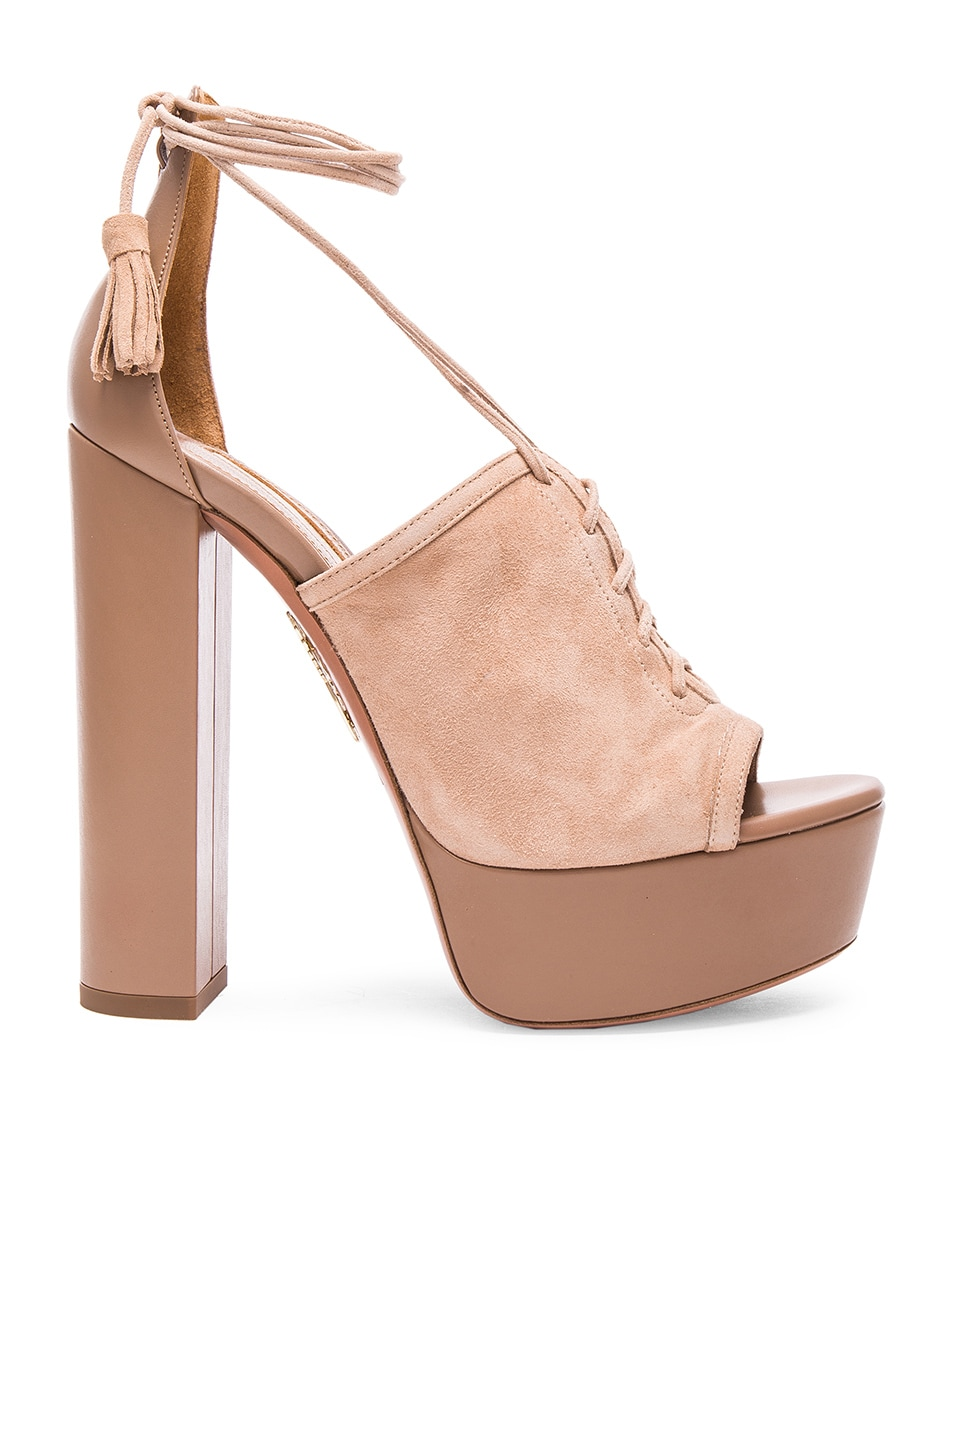 Image 1 of Aquazzura Suede Jac Platform Heels in Biscotto